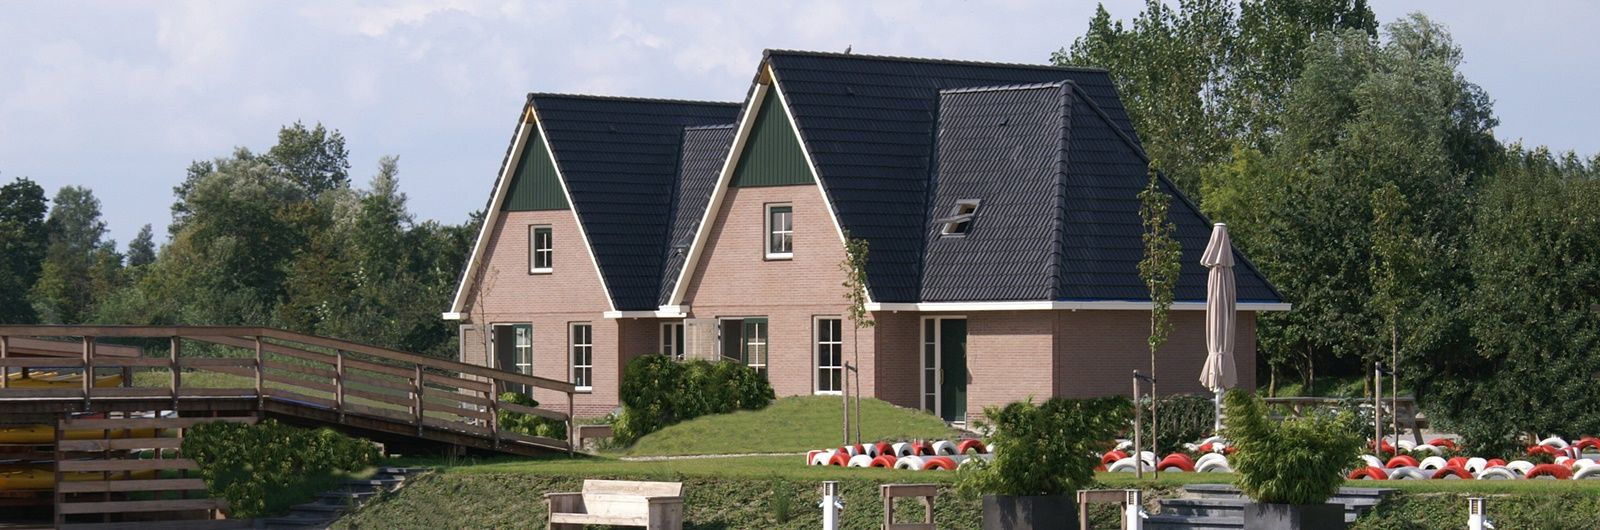 Beachvilla Royaal